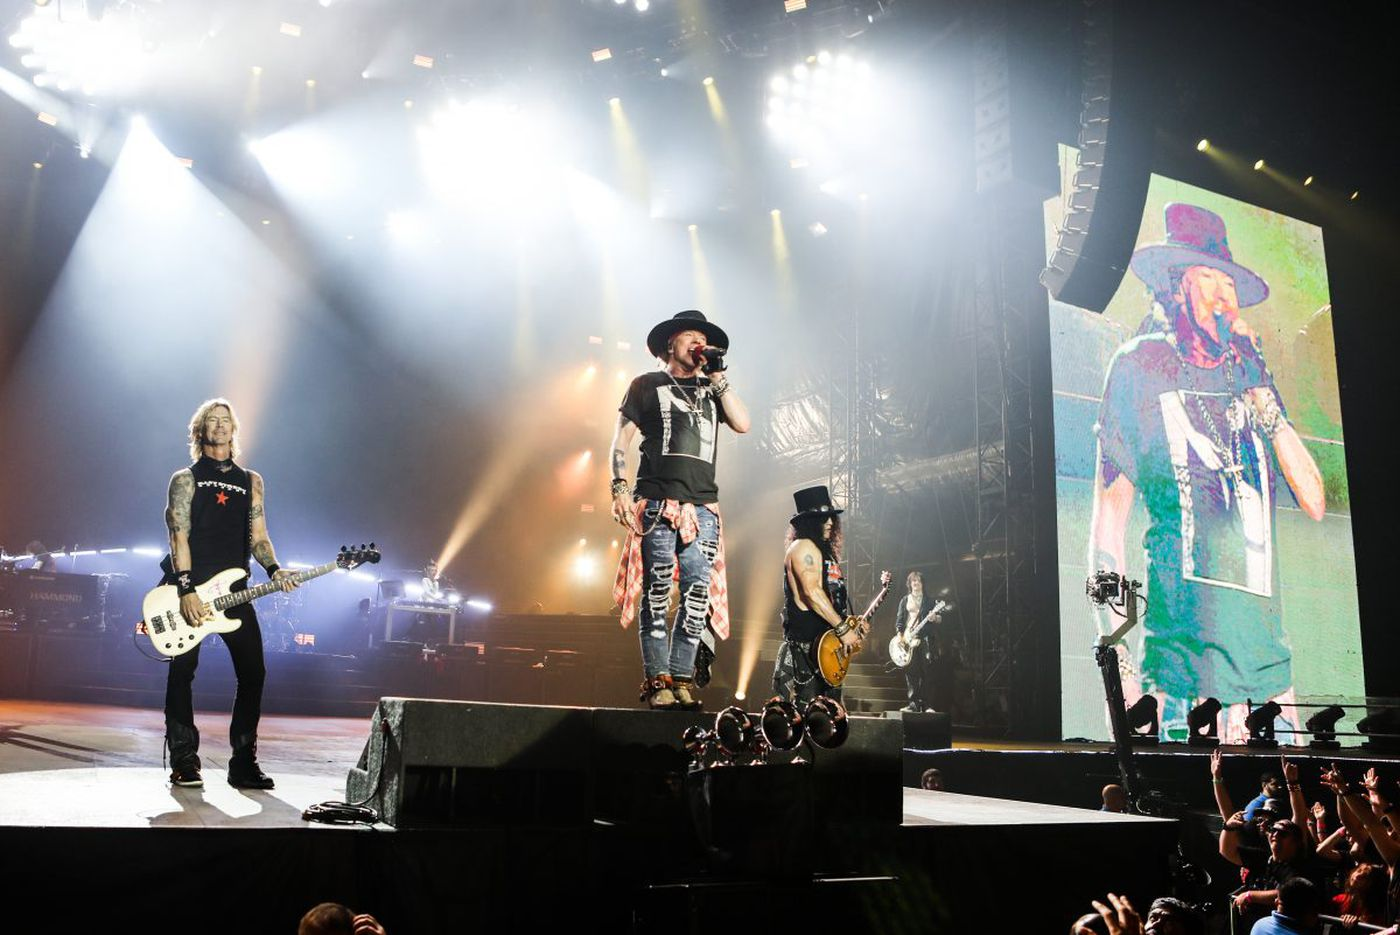 Meet the new Guns N' Roses: punctual, professional, and still defiant